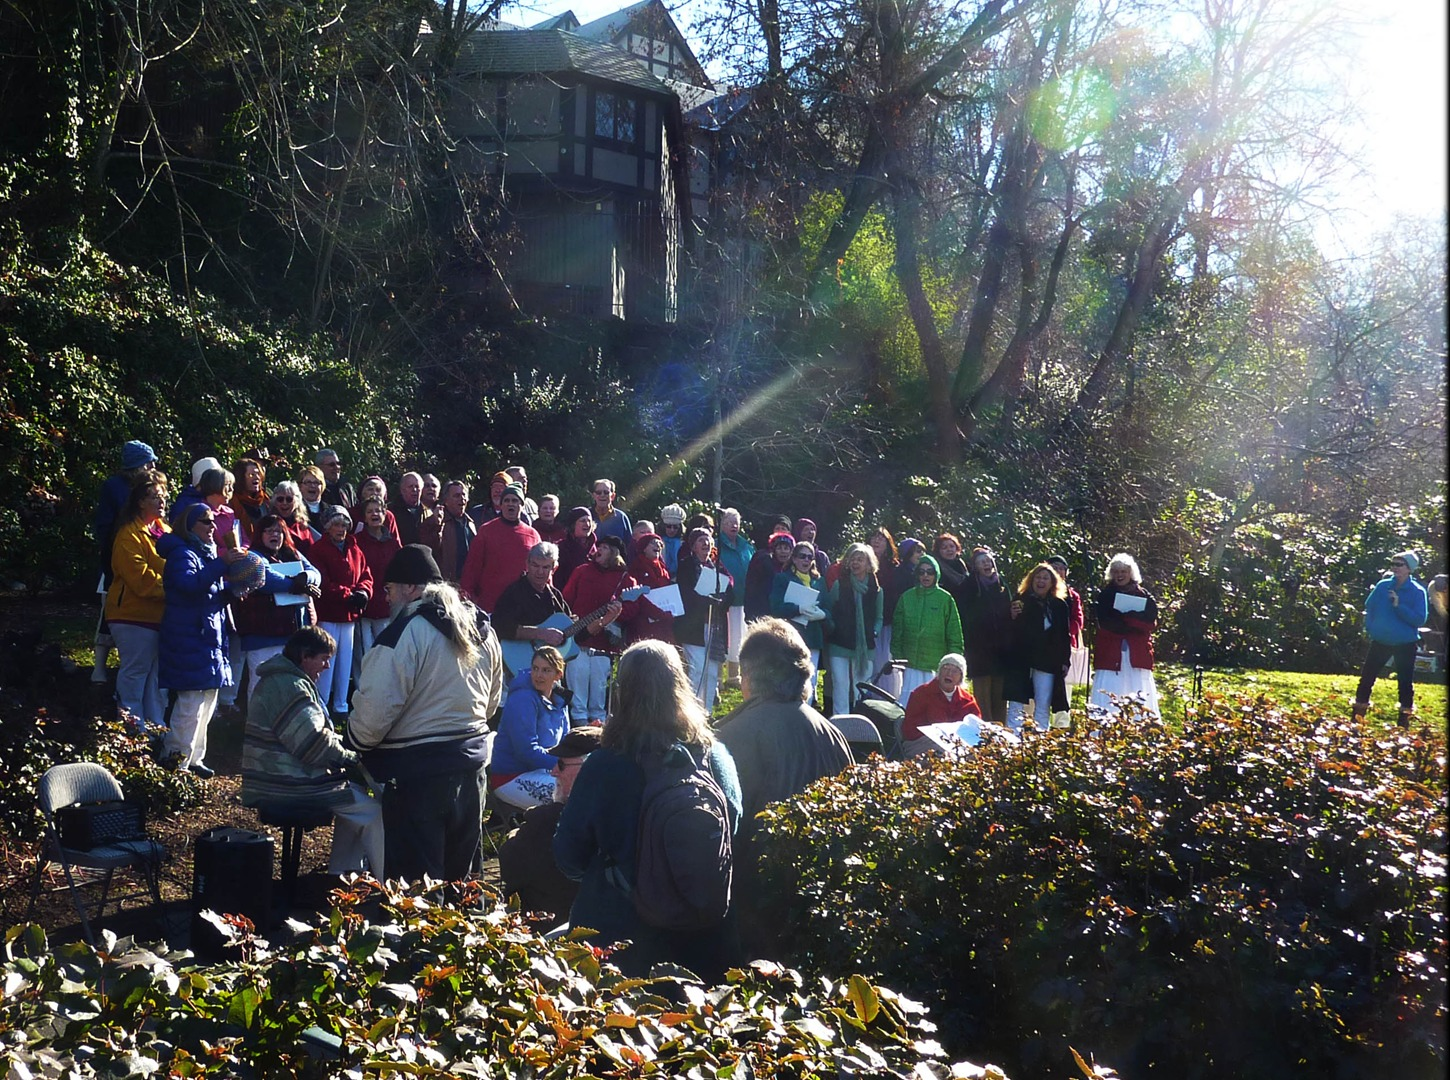 MLK Day in Lithia Park